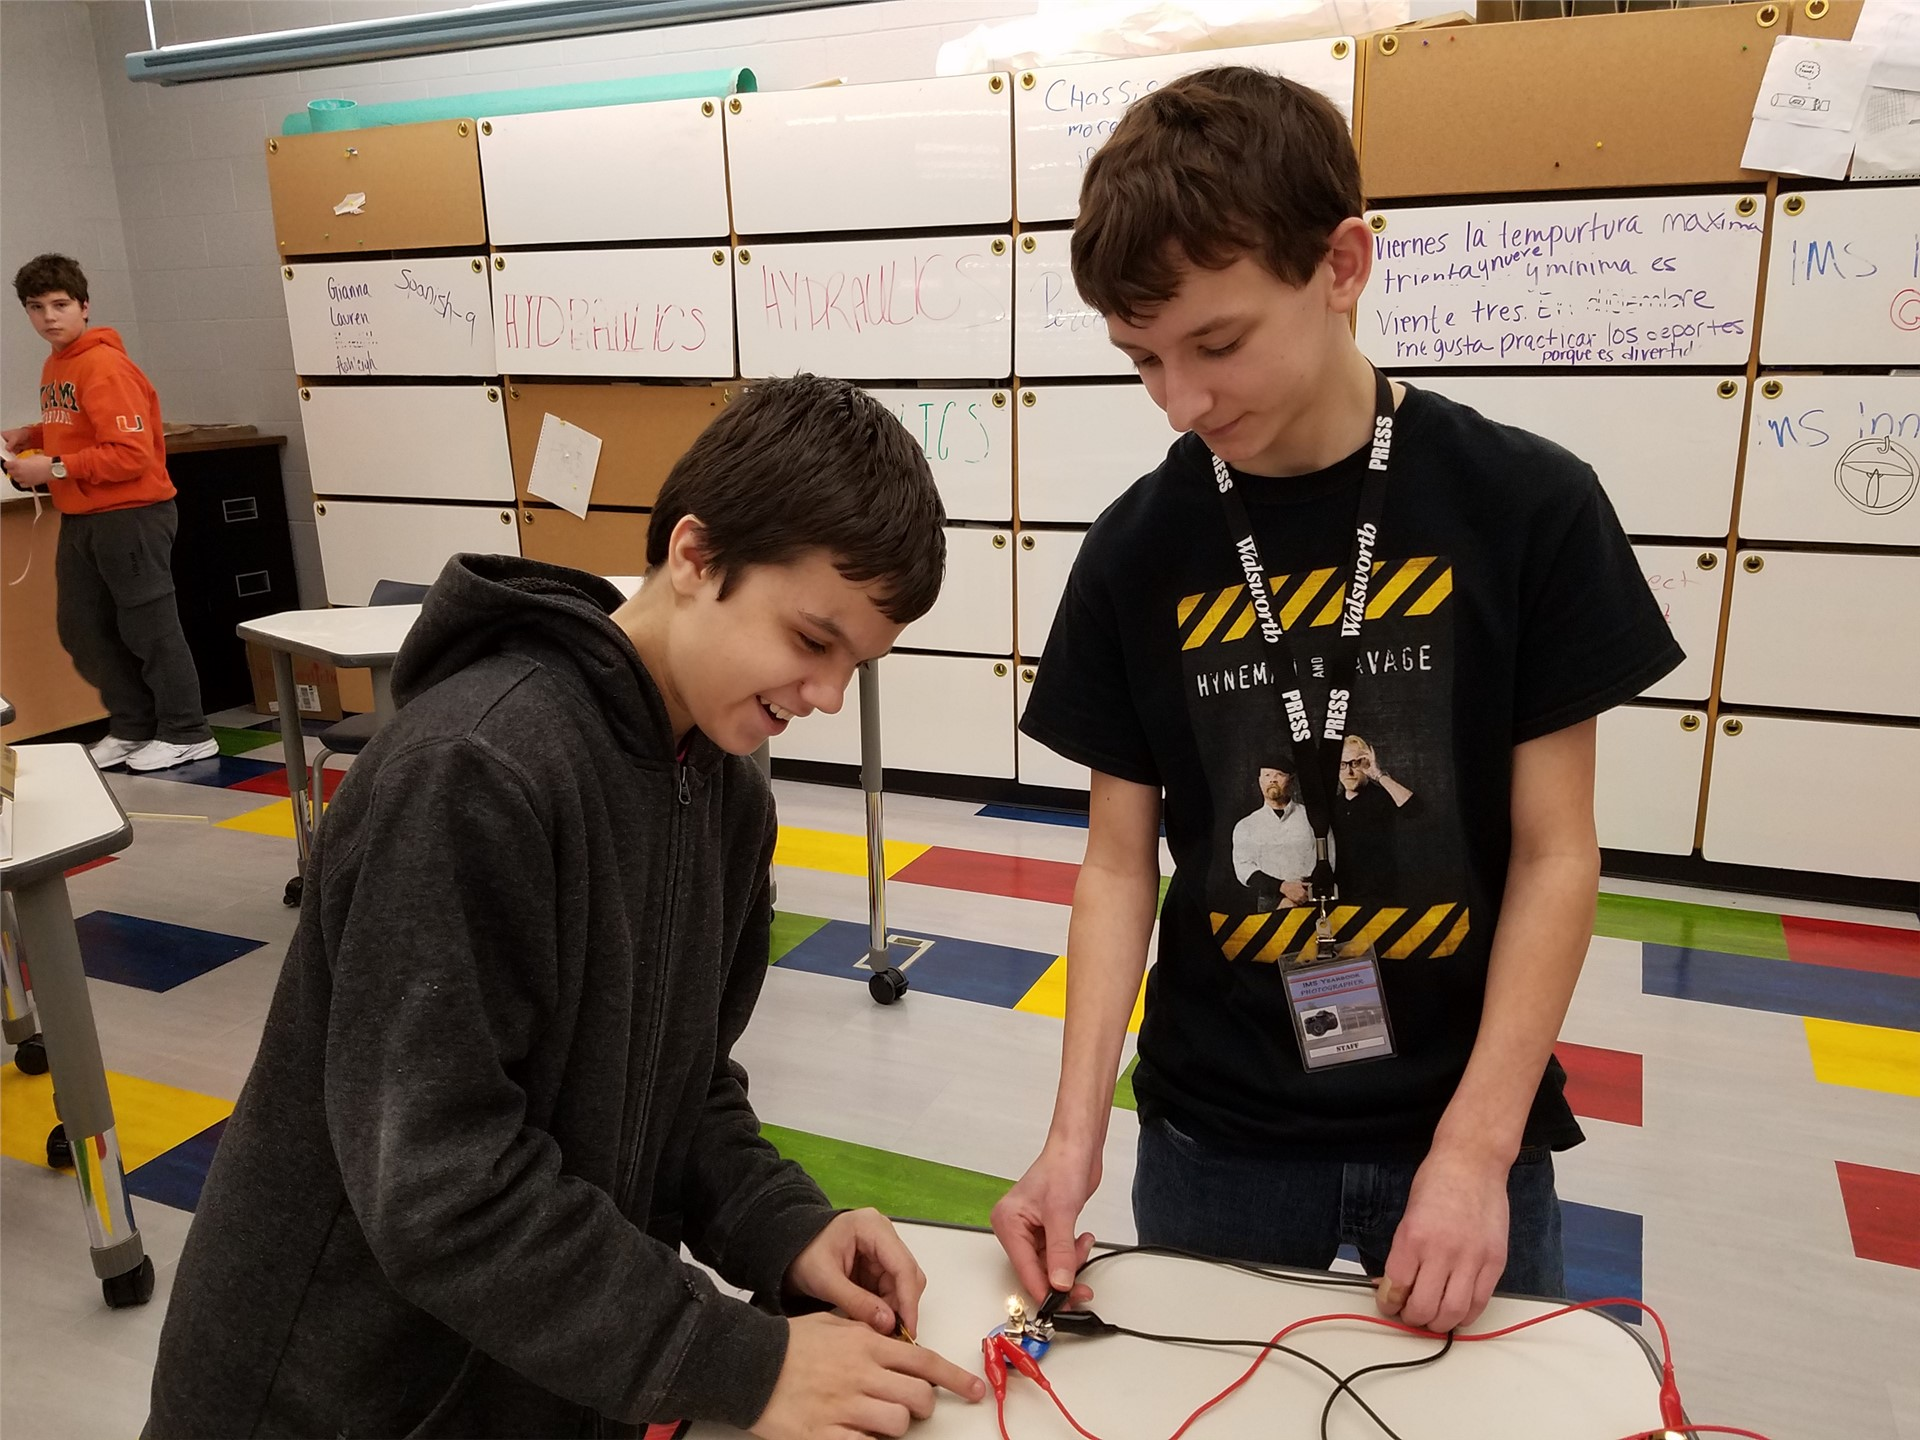 creating with circuitry